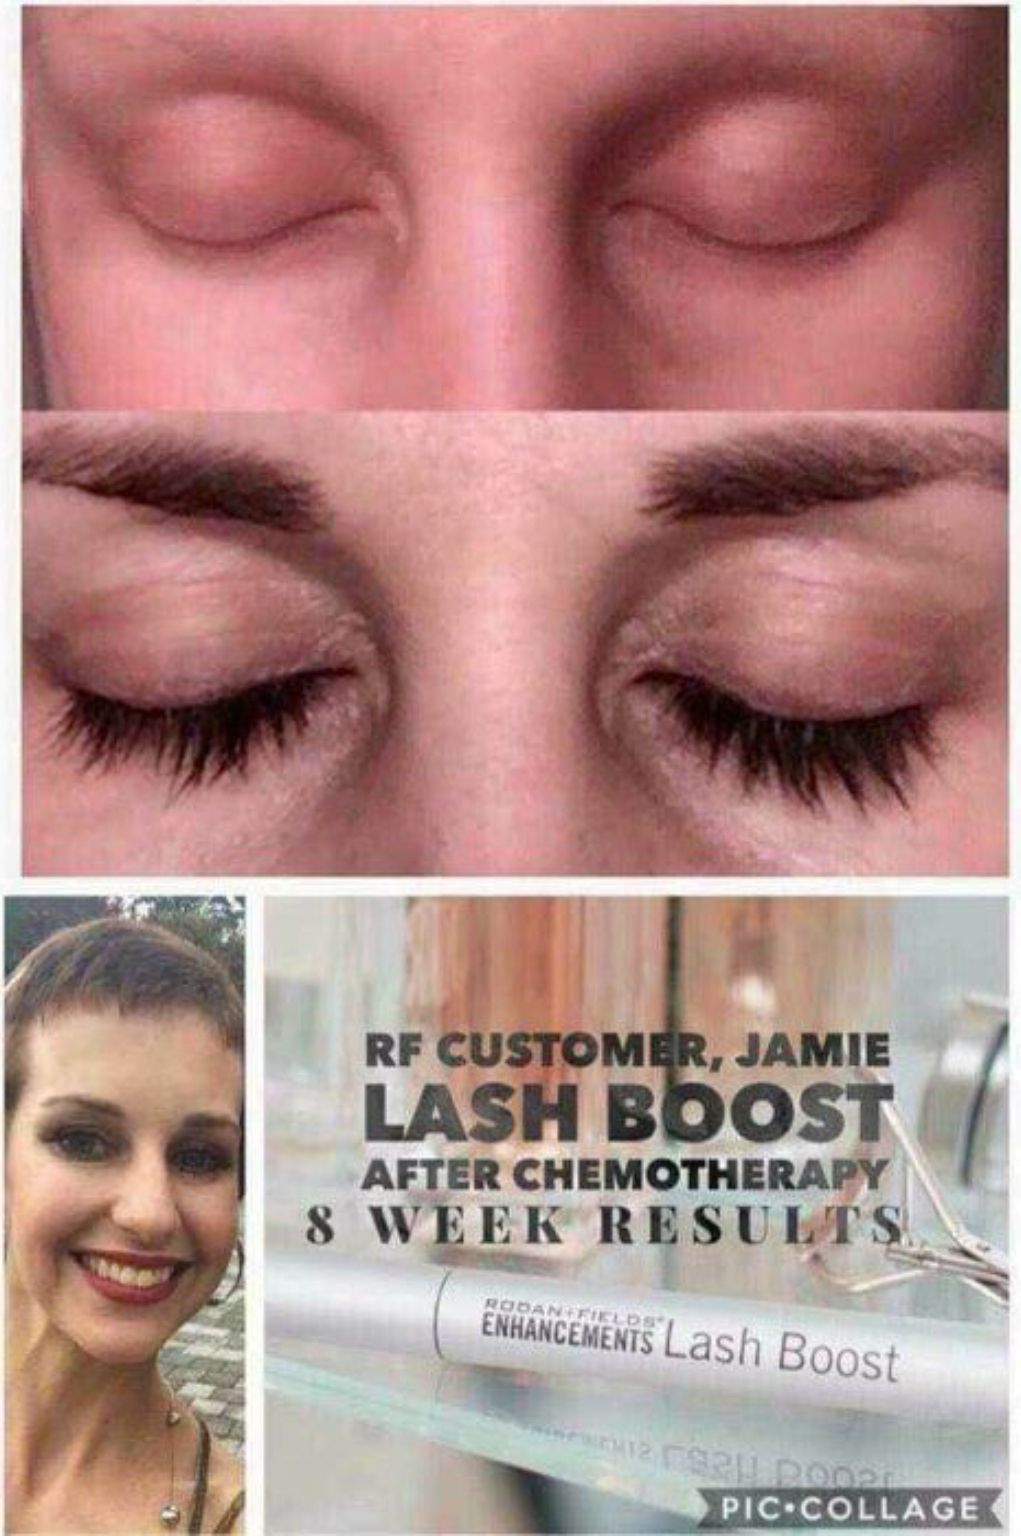 During Chemotherapy Jamie Lost Her Lashes And Brows Thanks To Lash